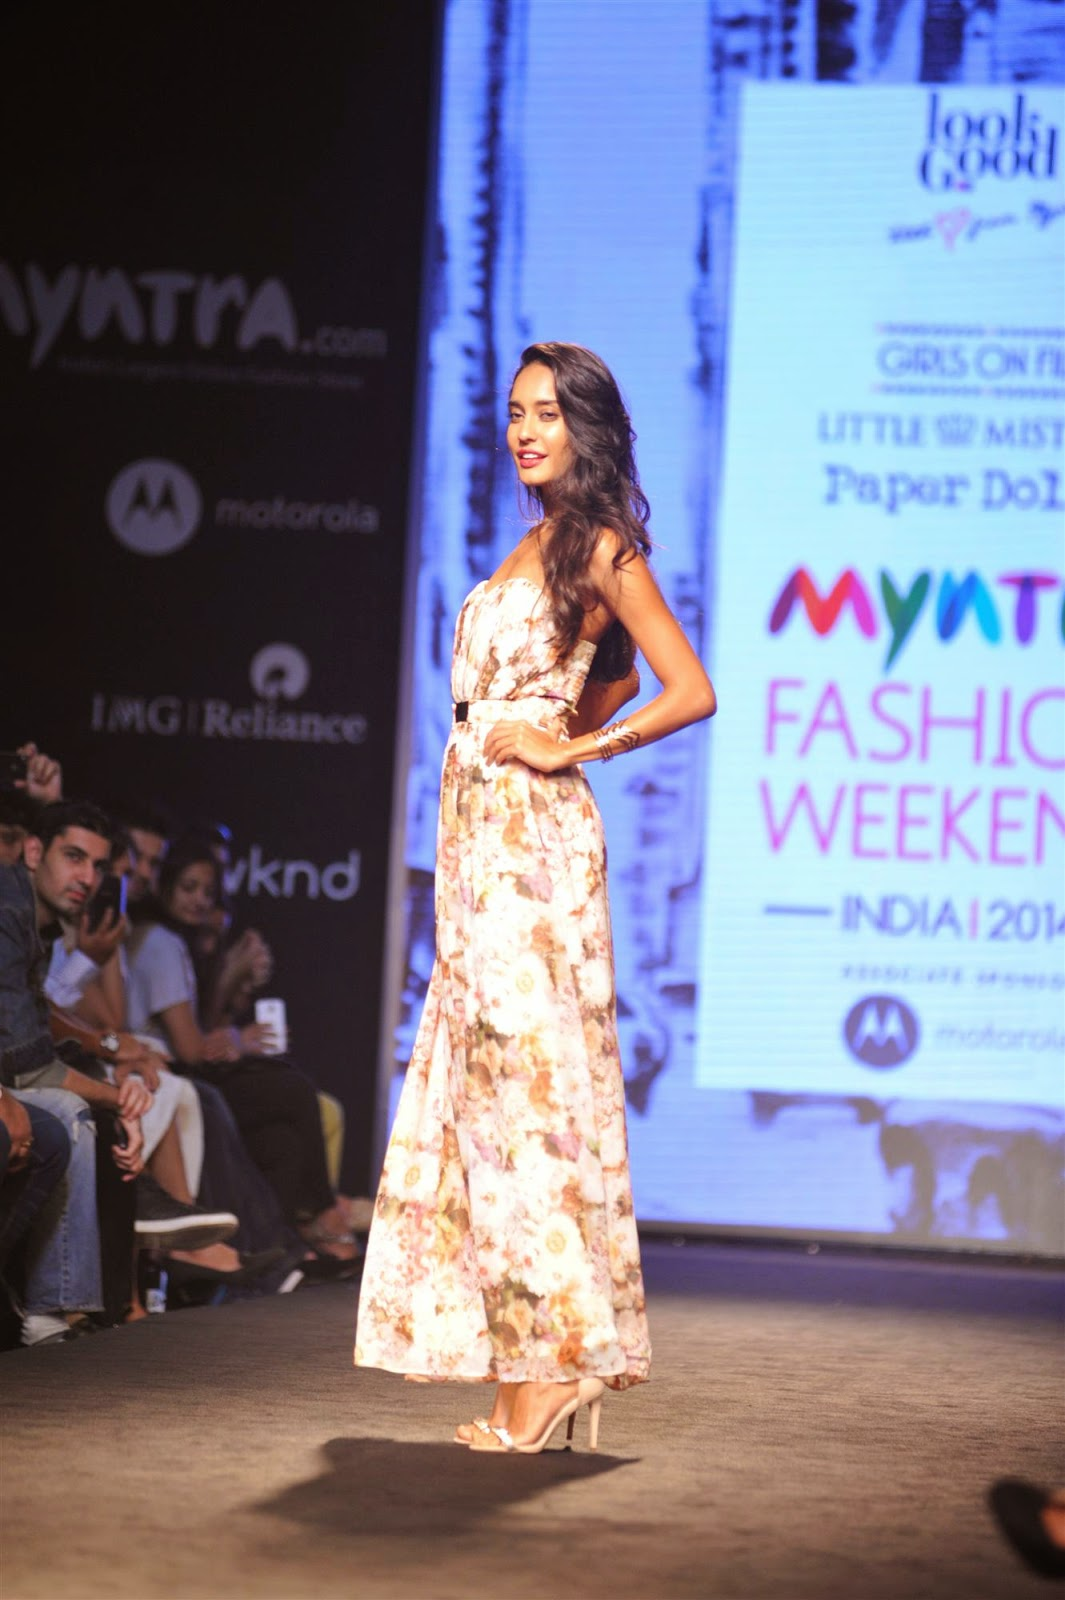 Lisa Haydon Ramp Walk at Myntra Fashion Weekendc